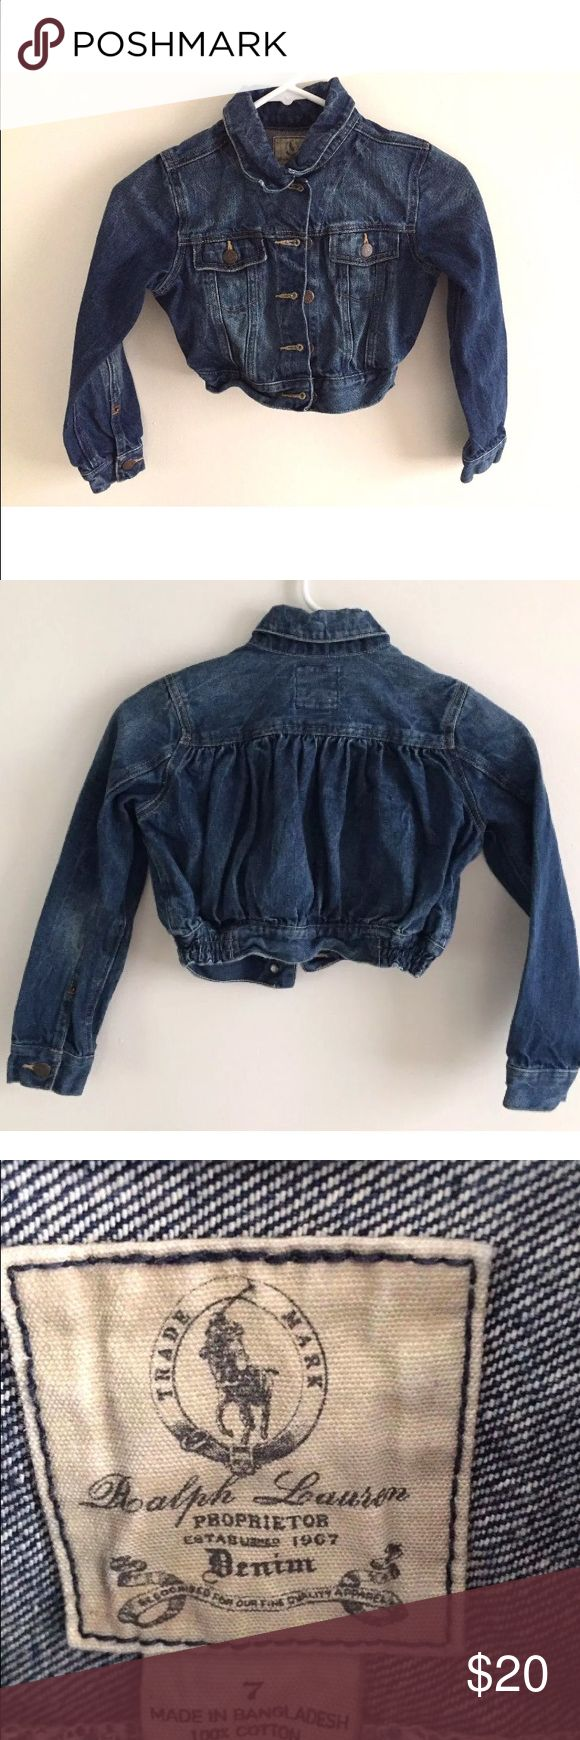 """Ralph Lauren Girl's Denim Jacket Size 7 Ralph Lauren Girl's Denim Jacket Size 7  Jacket is in great condition. No wear, stains or tears. All buttons are intact and comes from a smoke free home.  Armpit to Armpit: 14""""  Shoulder to Bottom: 13""""  Arm length: 16.5"""" Ralph Lauren Jackets & Coats Jean Jackets"""